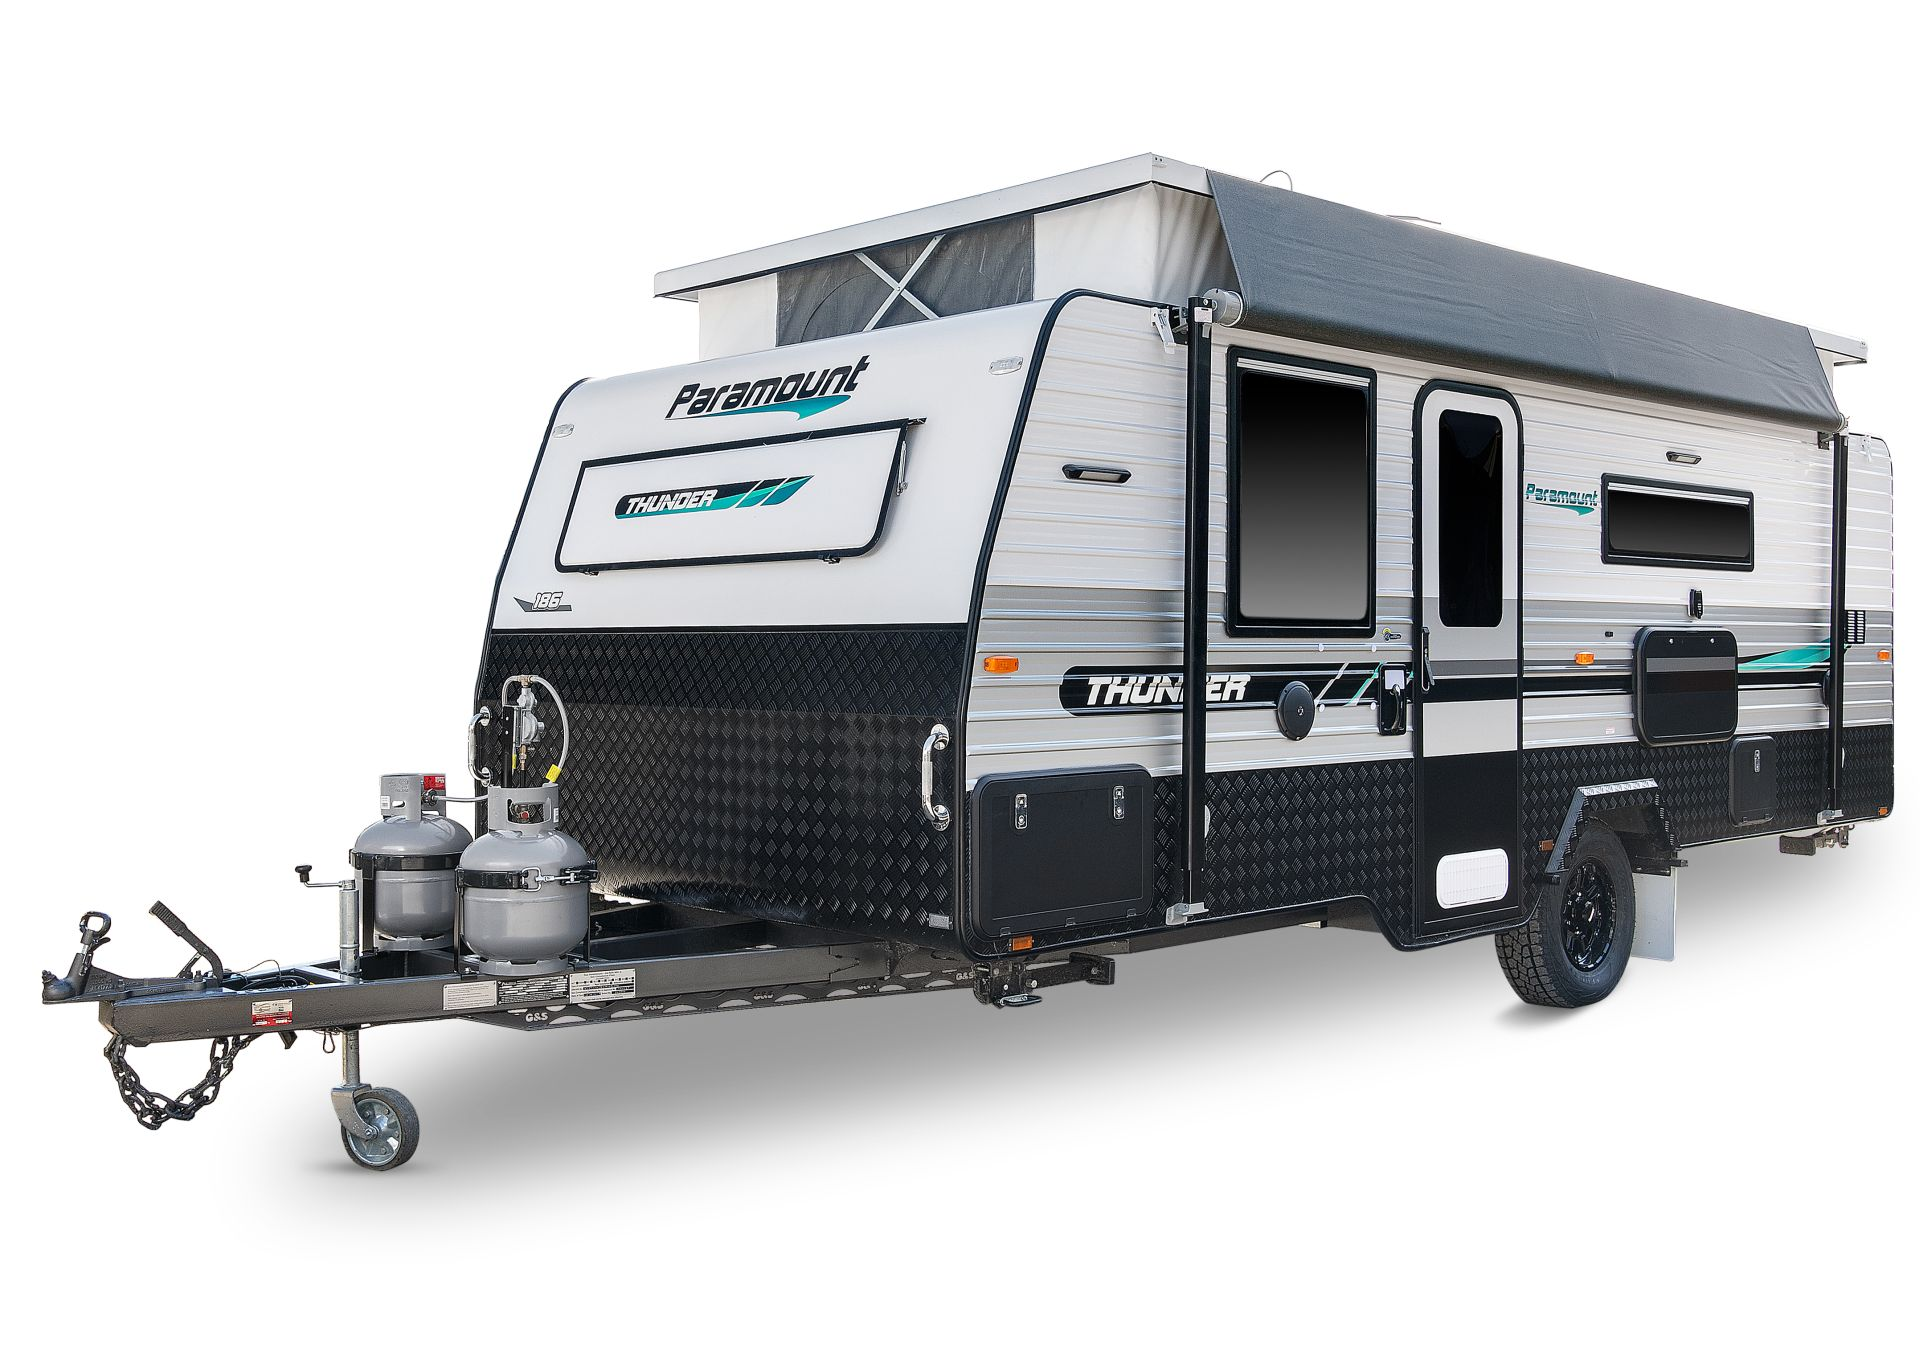 thunder 186 paramount caravans c5713 dom 062019 2.jpg white background with drop shadow